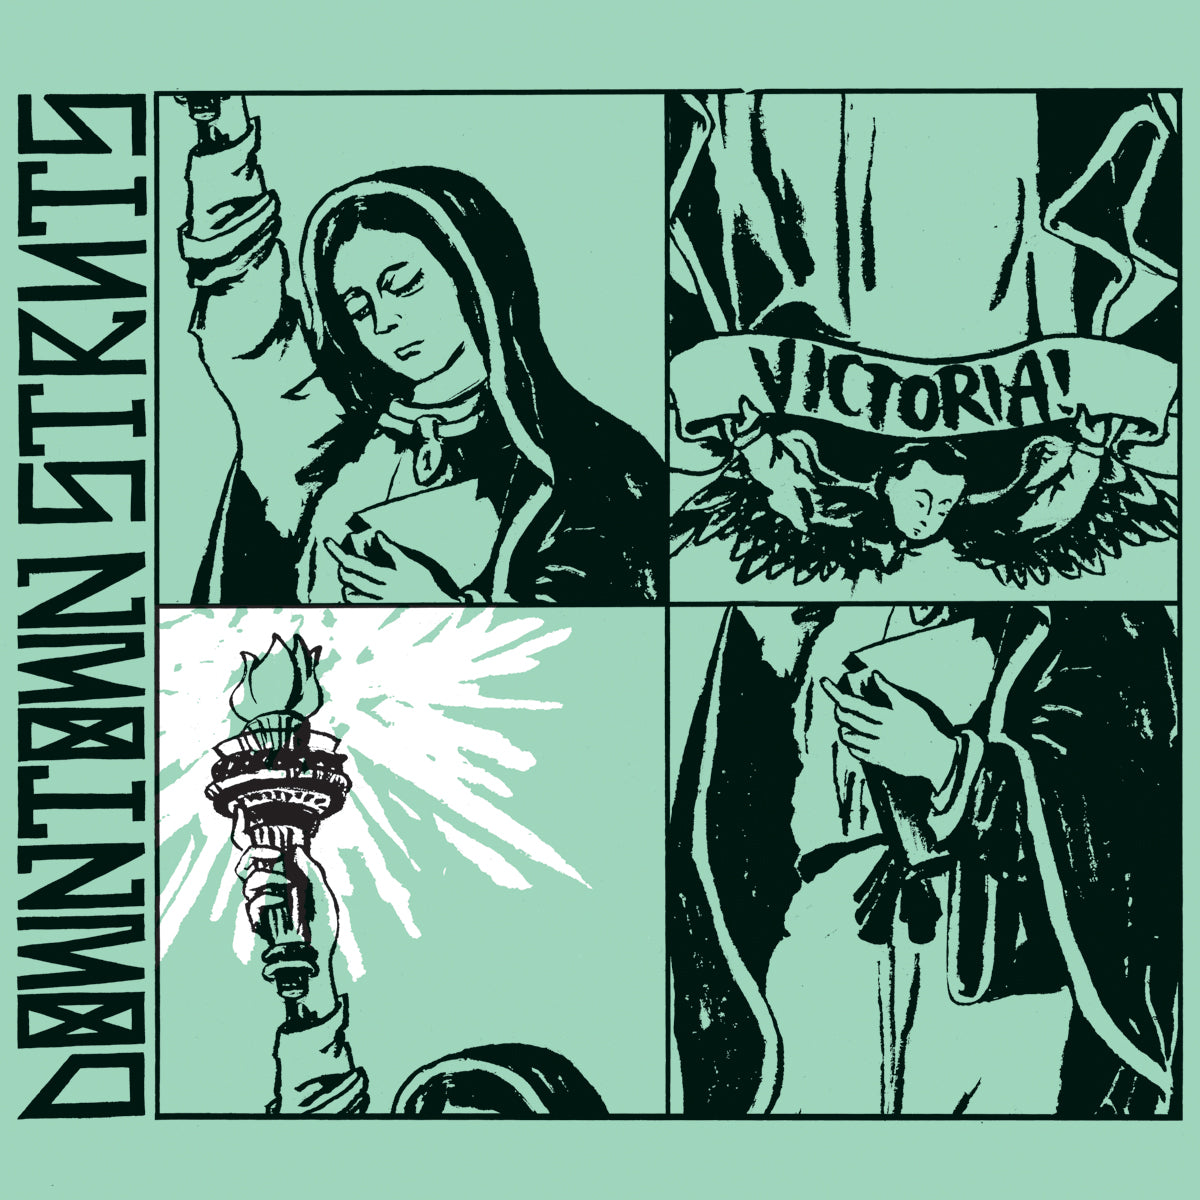 Downtown Struts - Victoria! LP / CD